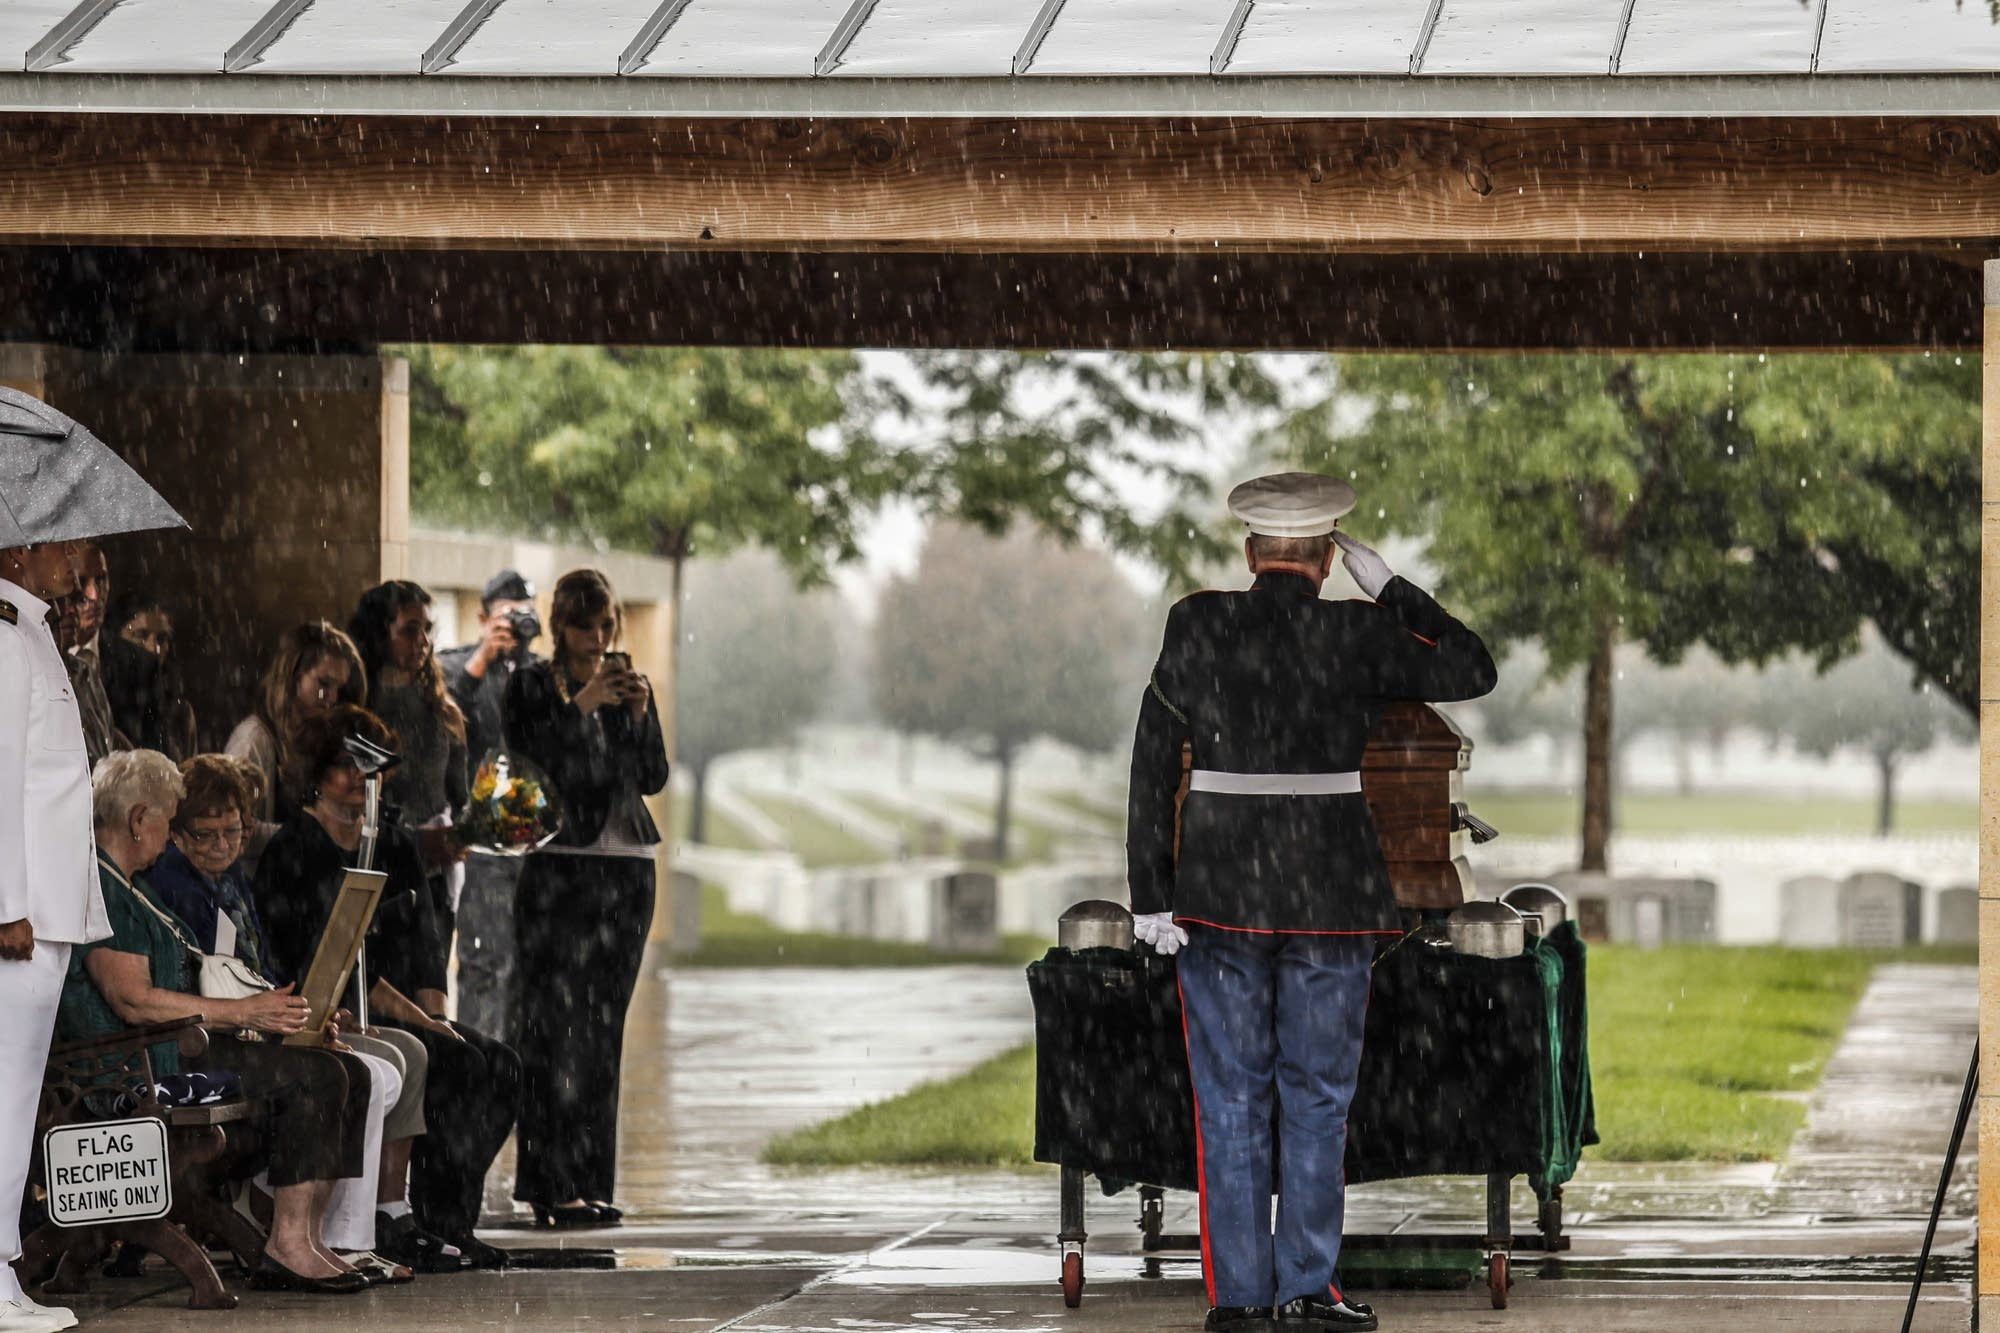 Memorial was held for Kenneth Holm, a Pearl Harbor Navy Fireman 3rd class.